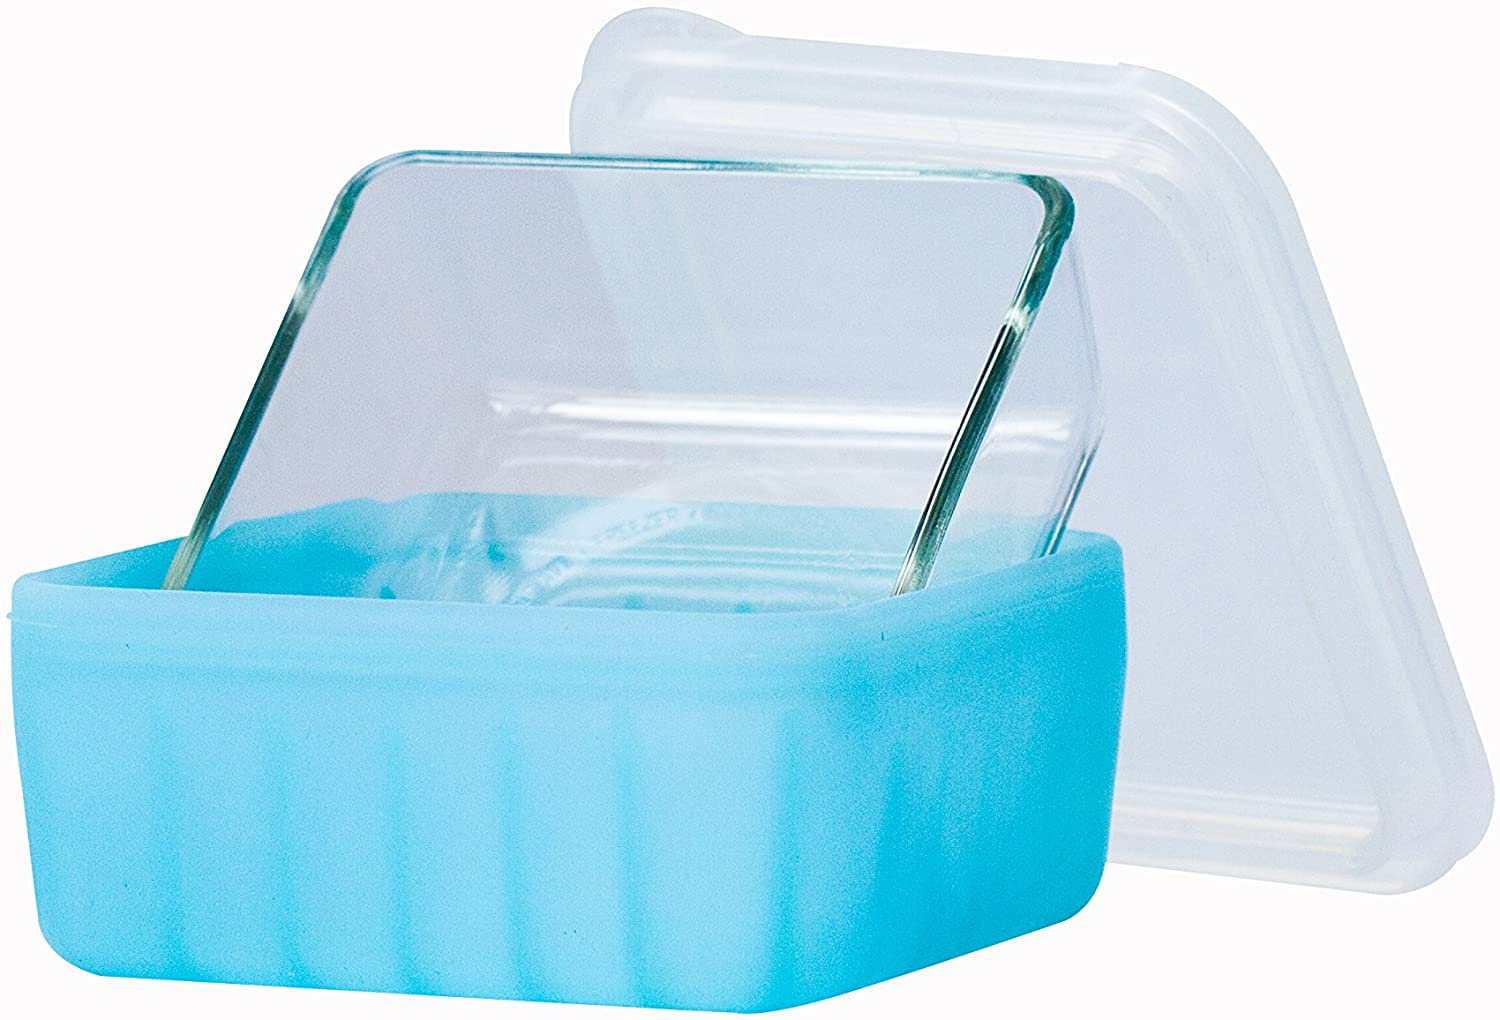 Frego Award-Winning Plastic-Free Glass and Silicone Food Container | 4 Cups | Blue